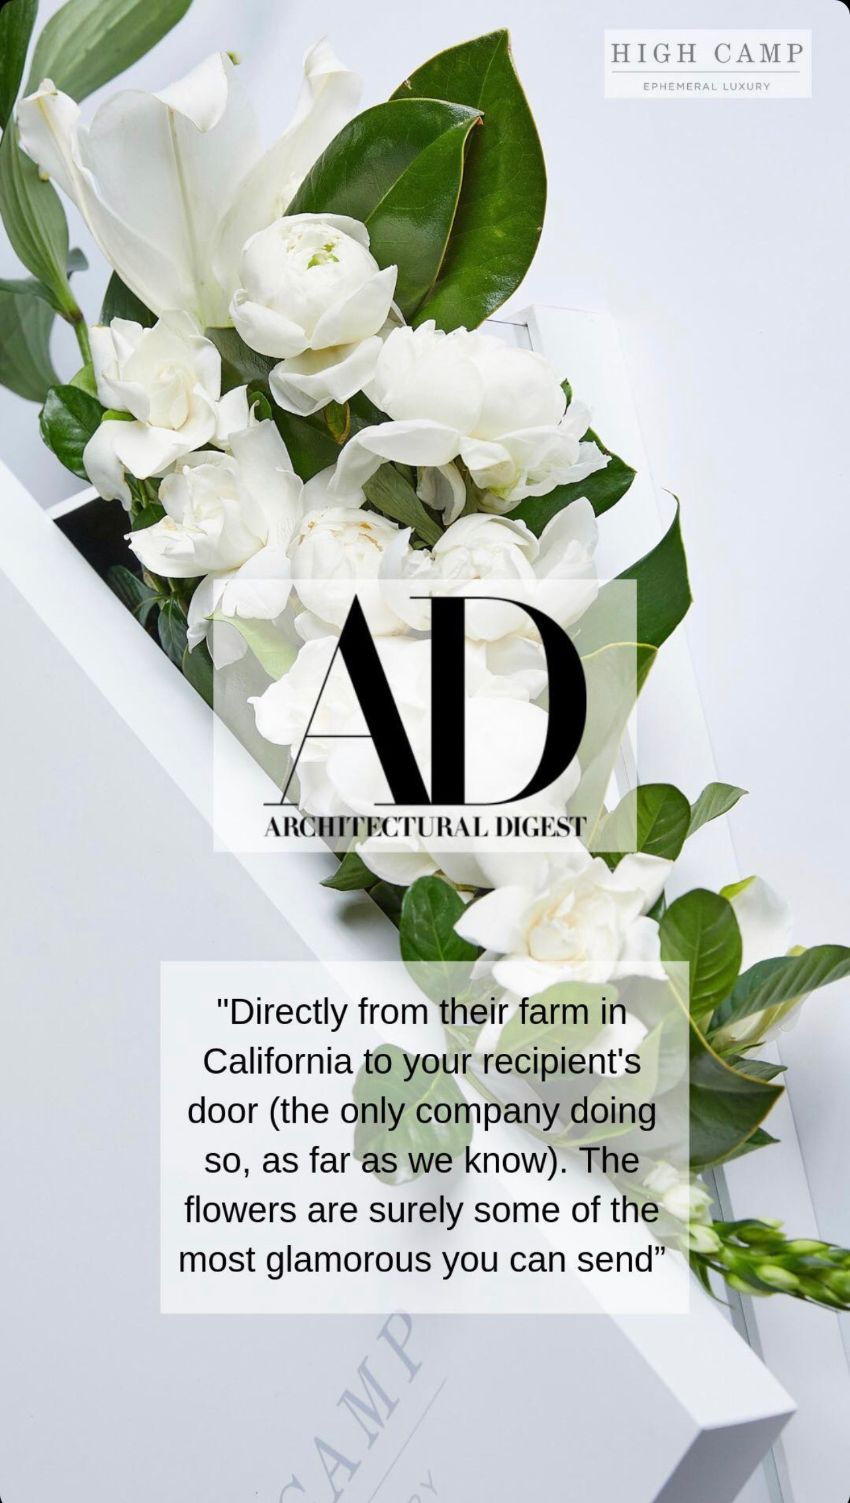 AD quote on High Camp Gardenias